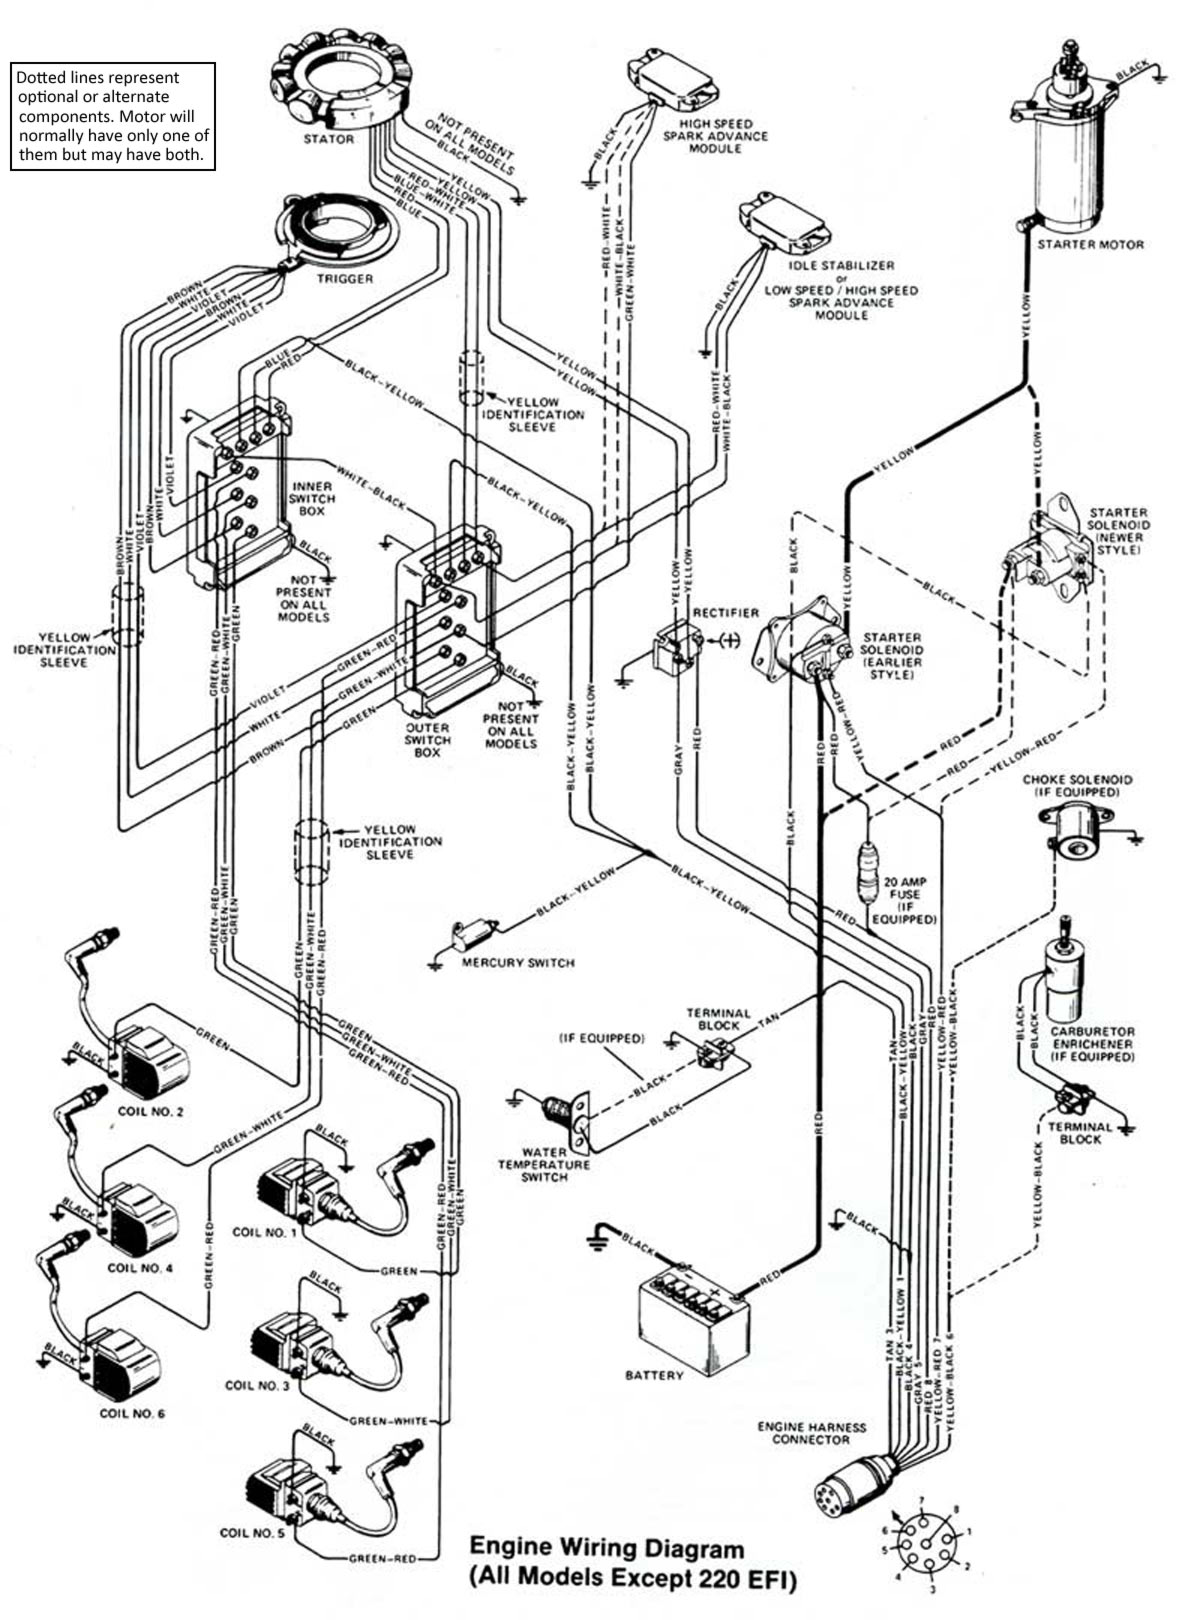 Diagrams739591 Yamaha Outboard Wiring Harness Diagram Yamaha – Diagram Of Outboard Engine